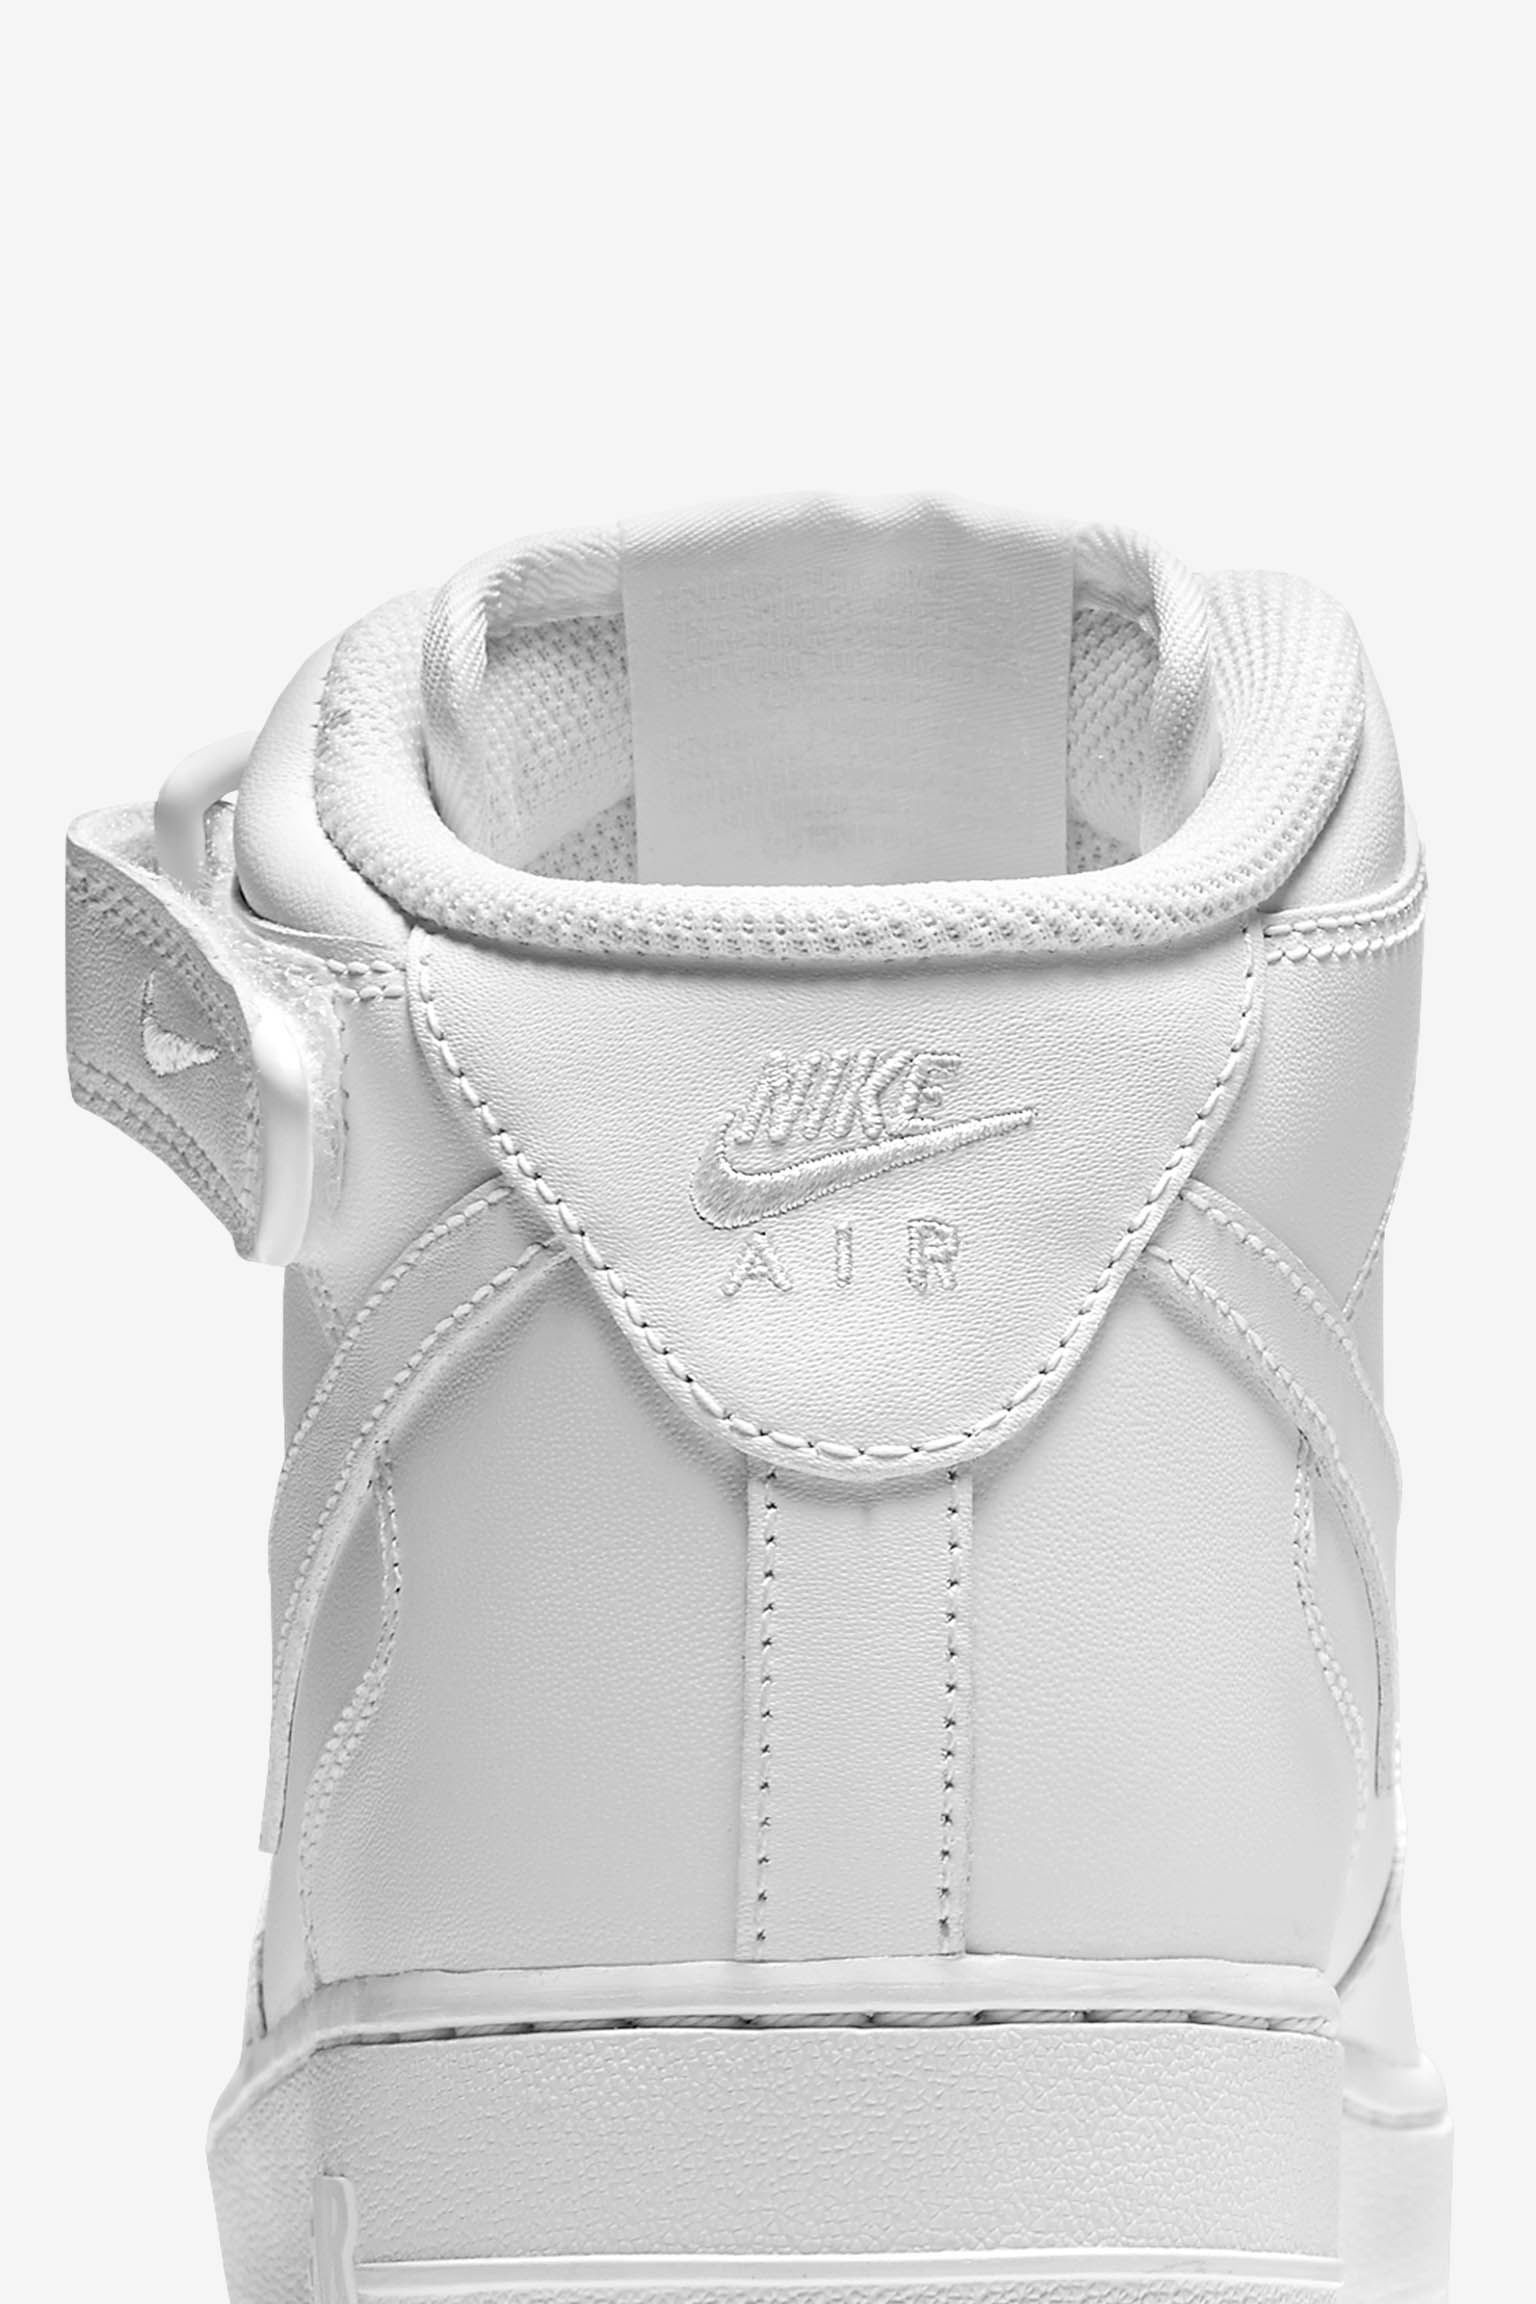 Women's Nike Air Force 1 Mid 07 Leather 'Triple White'. Nike SNKRS